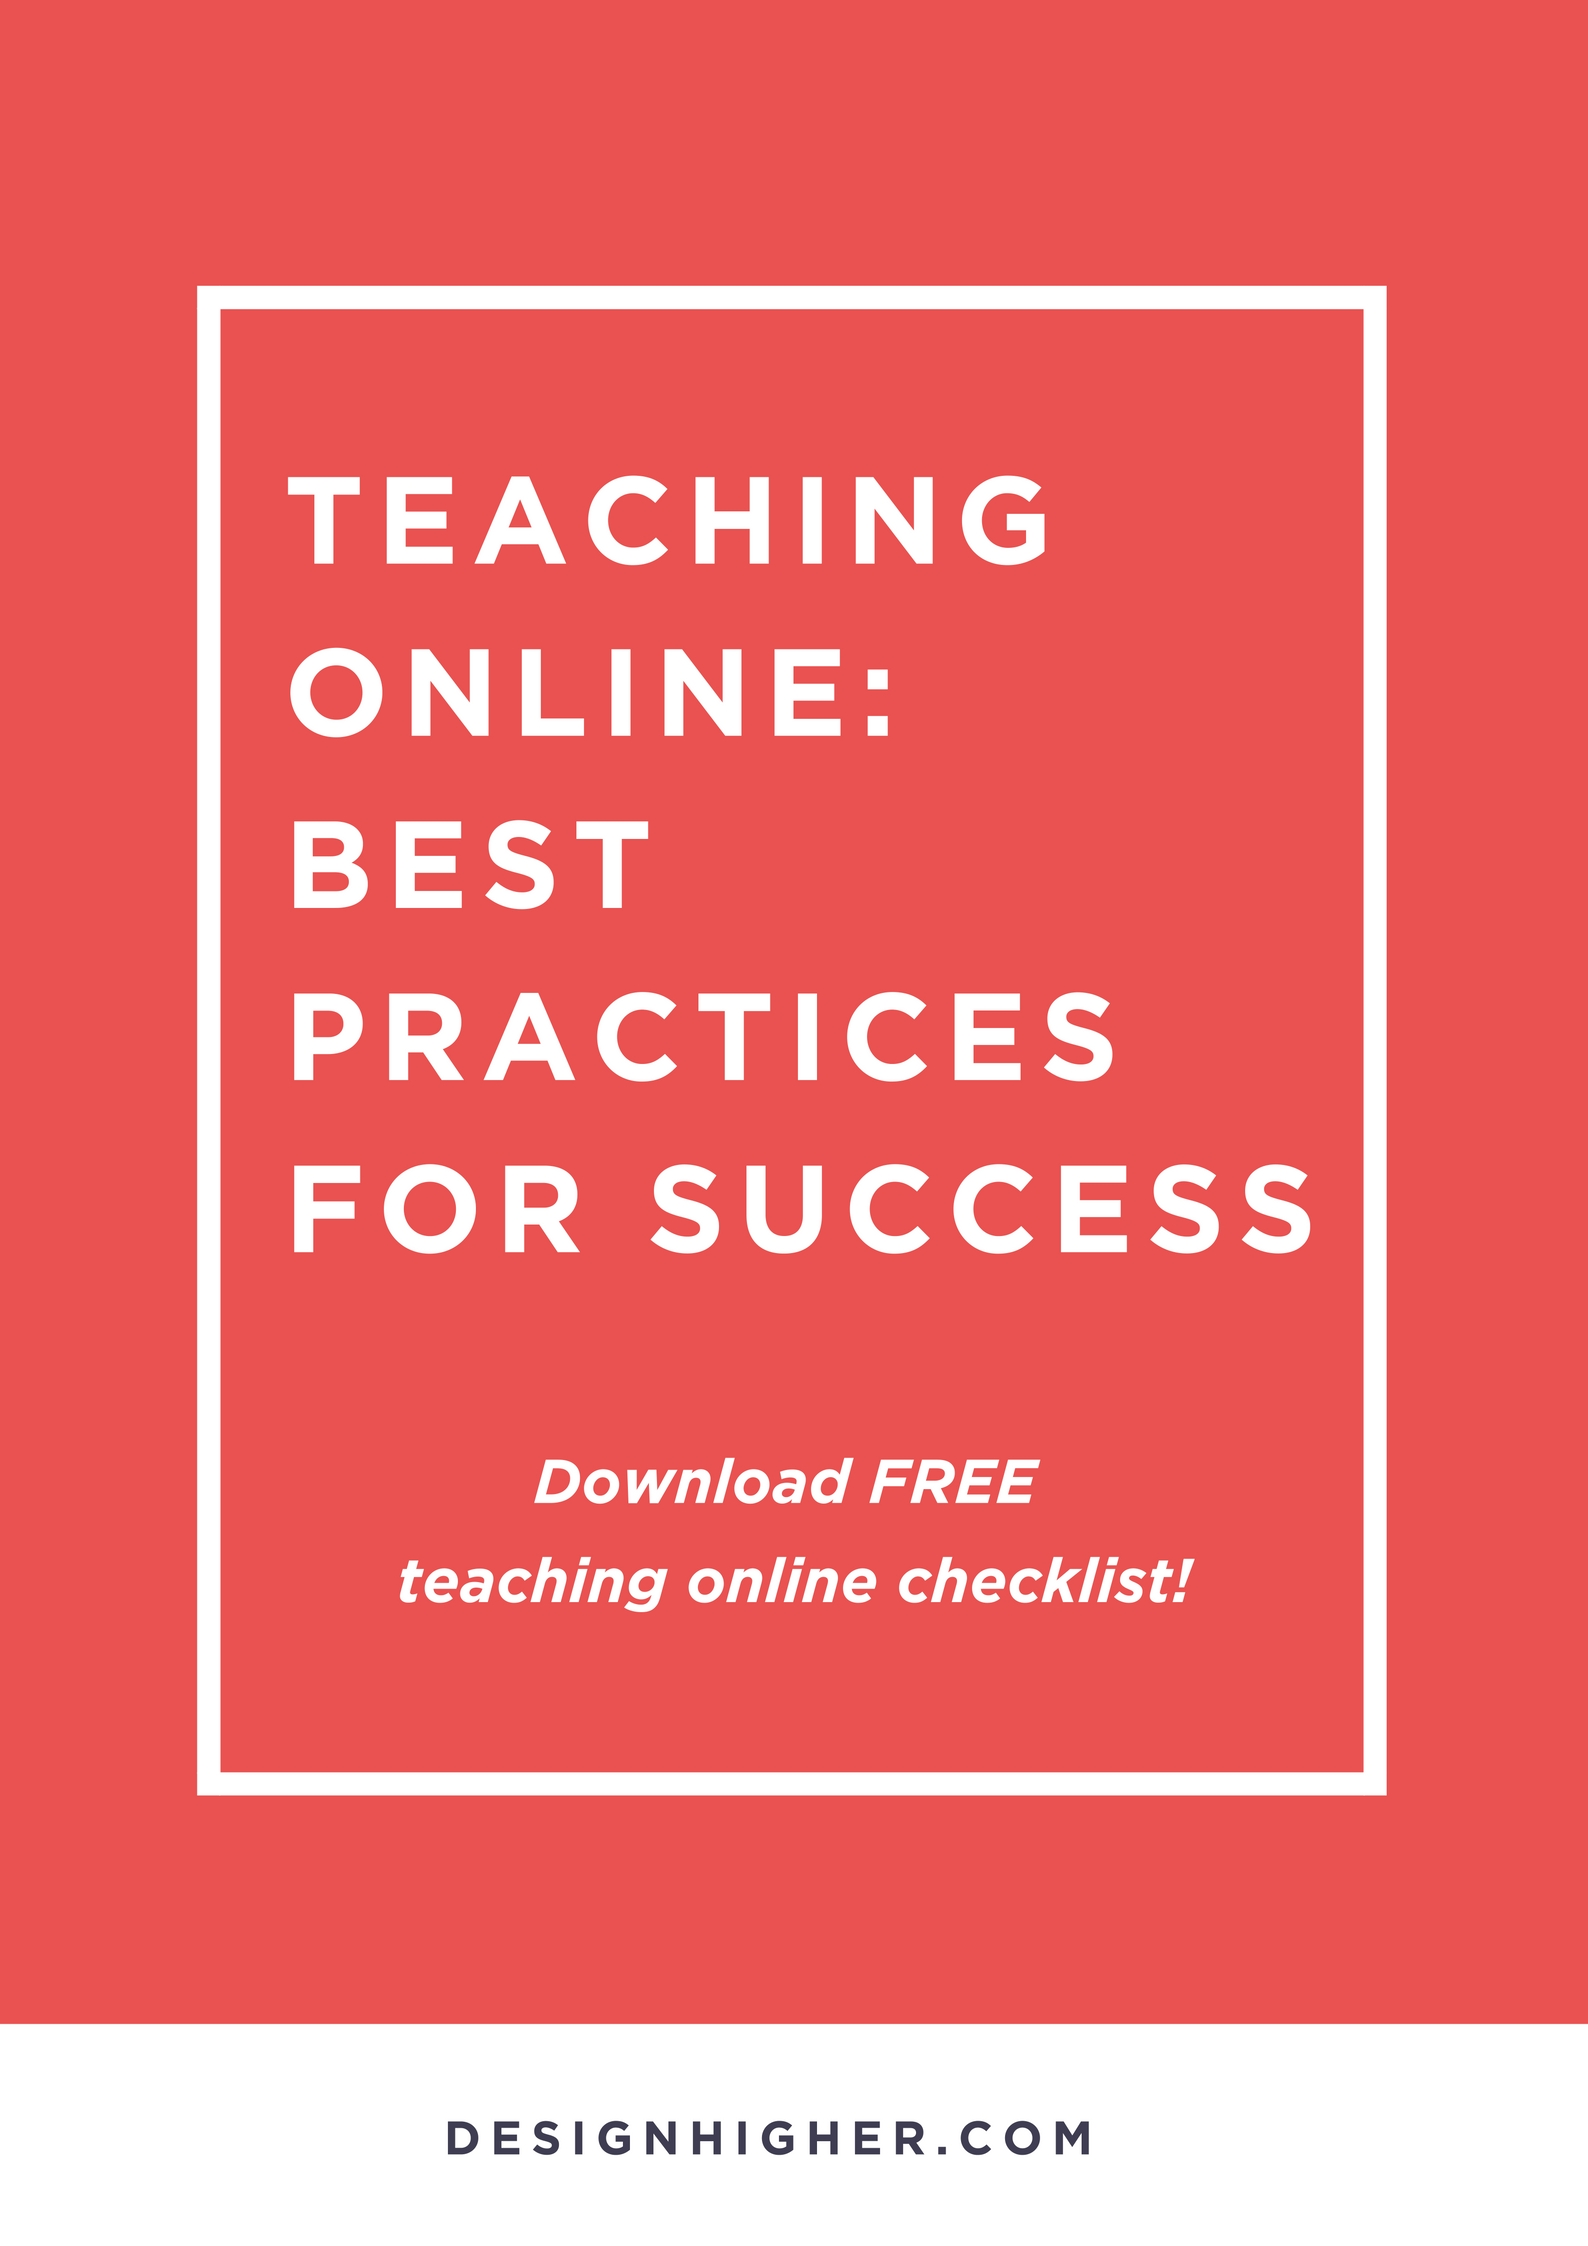 Teaching Online: Best Practices for Success. Free download!